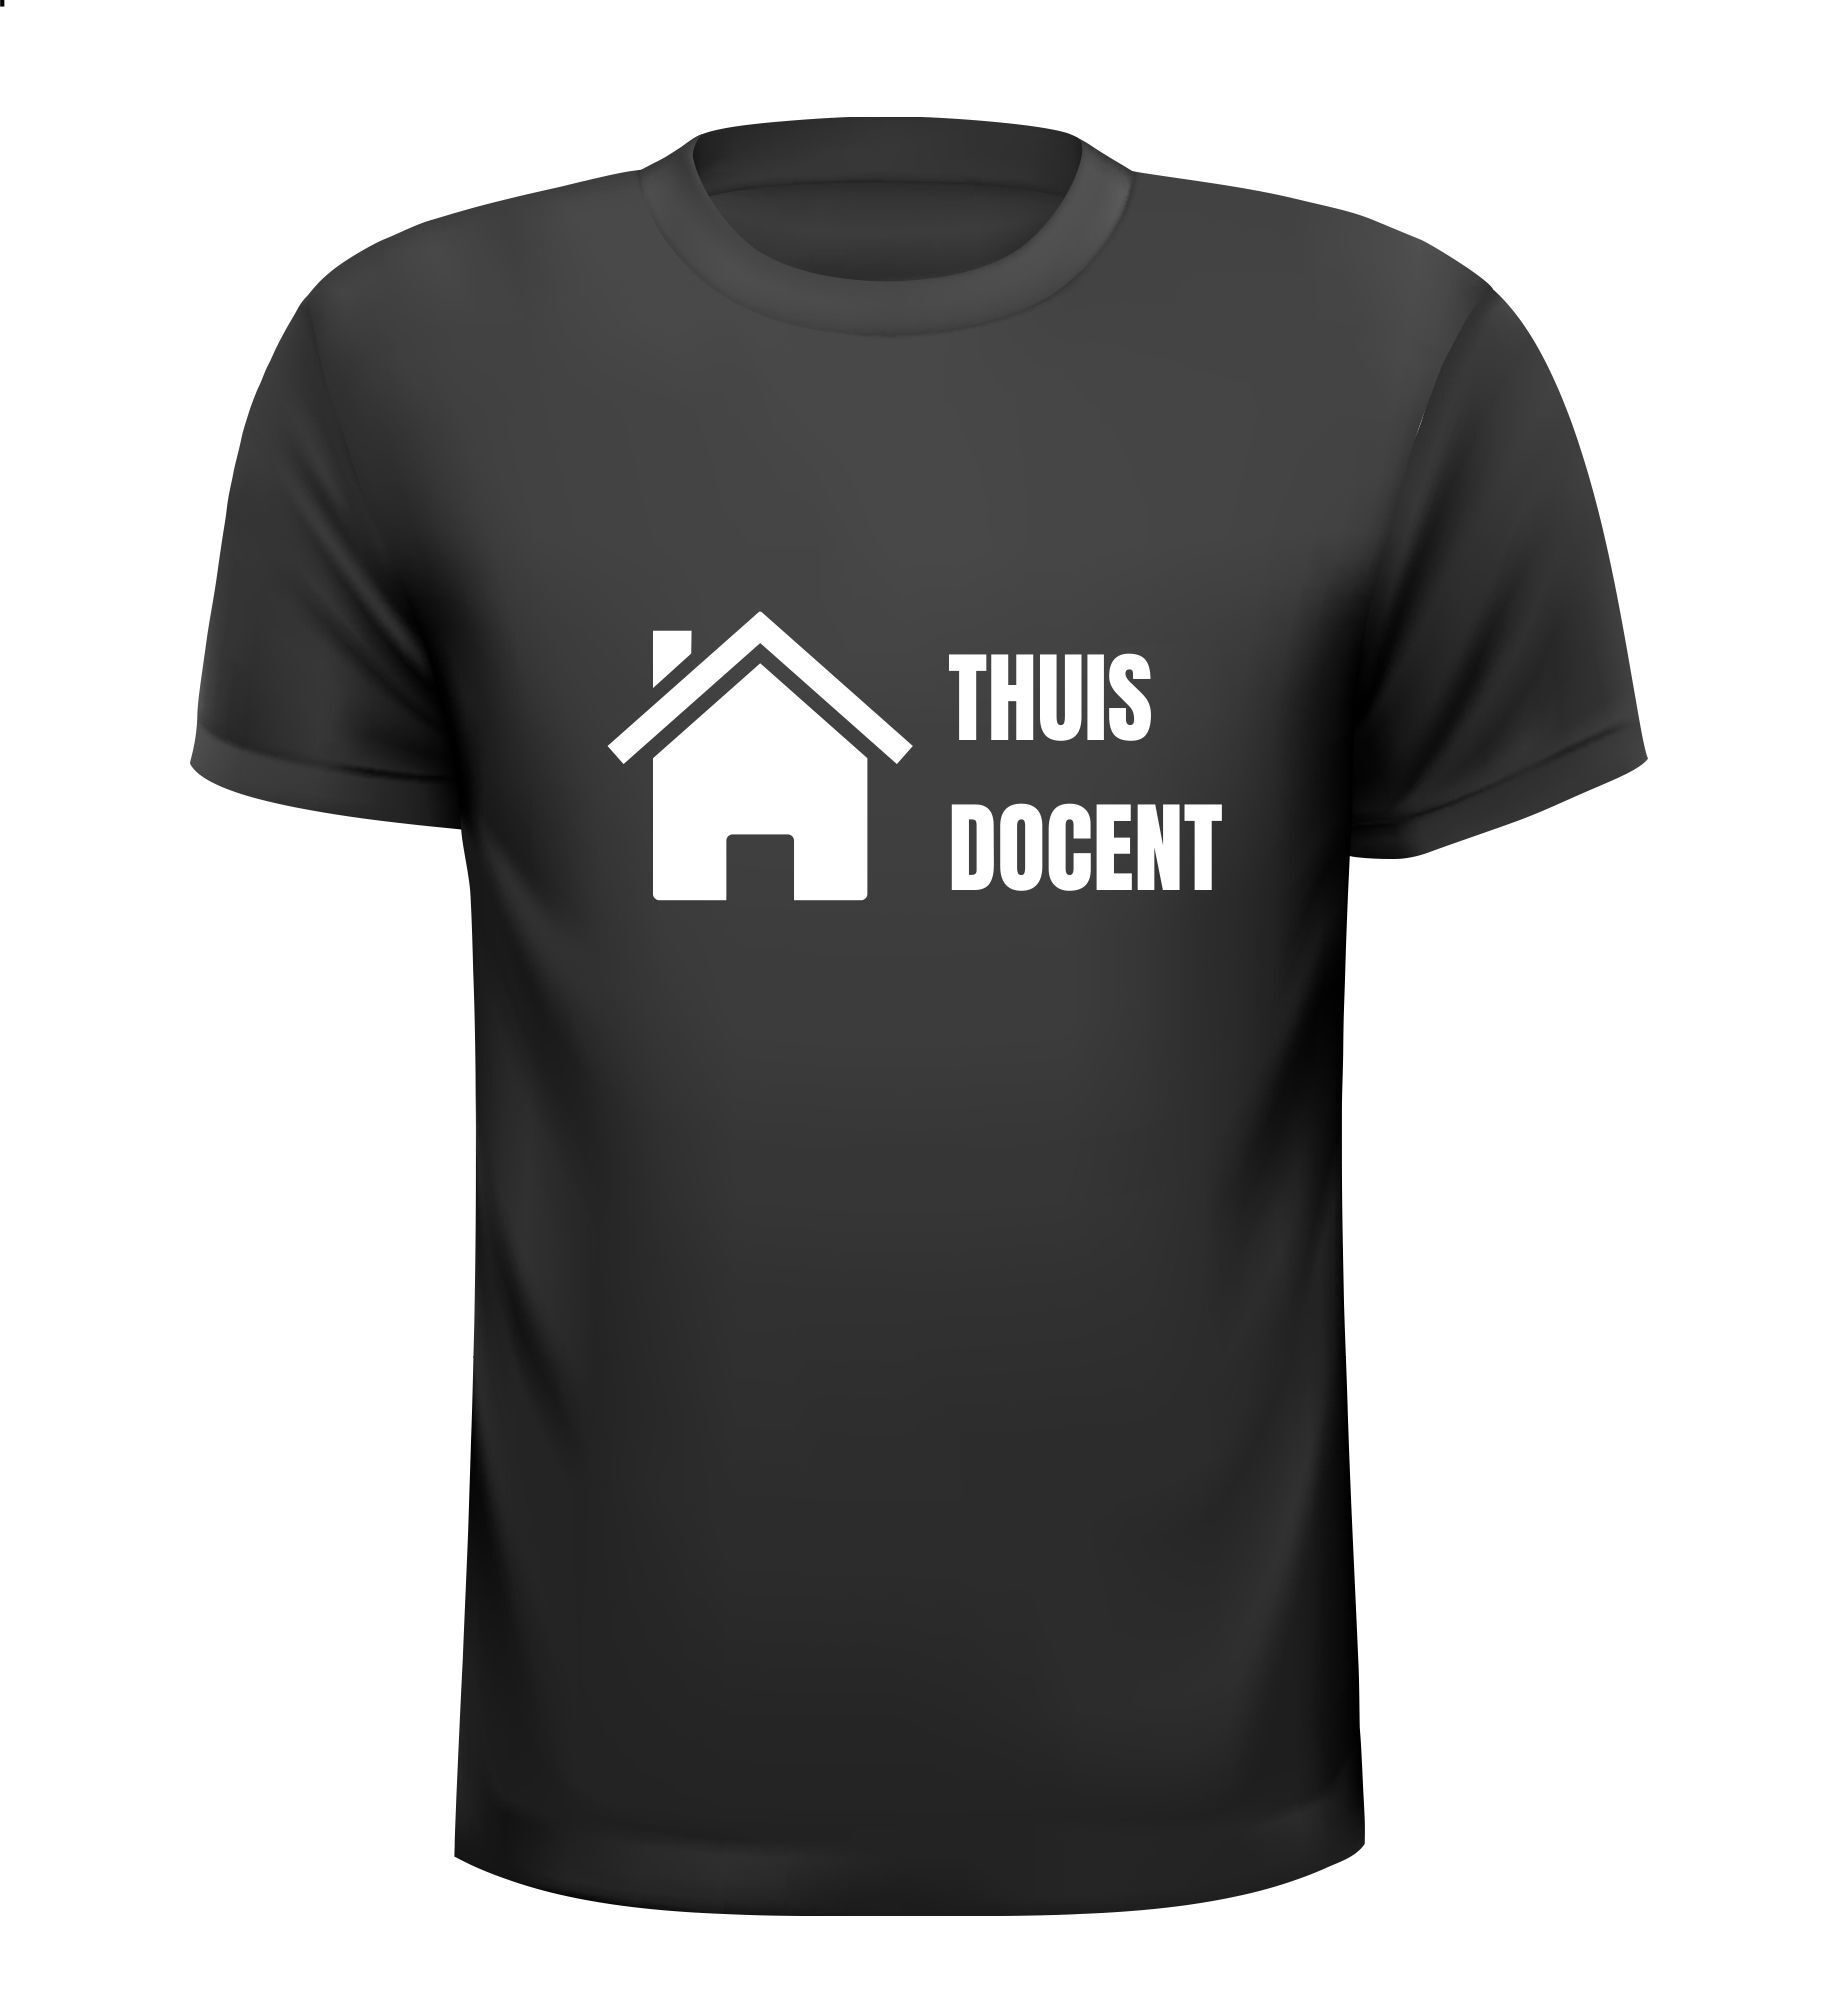 Thuis docent grappig T-shirt